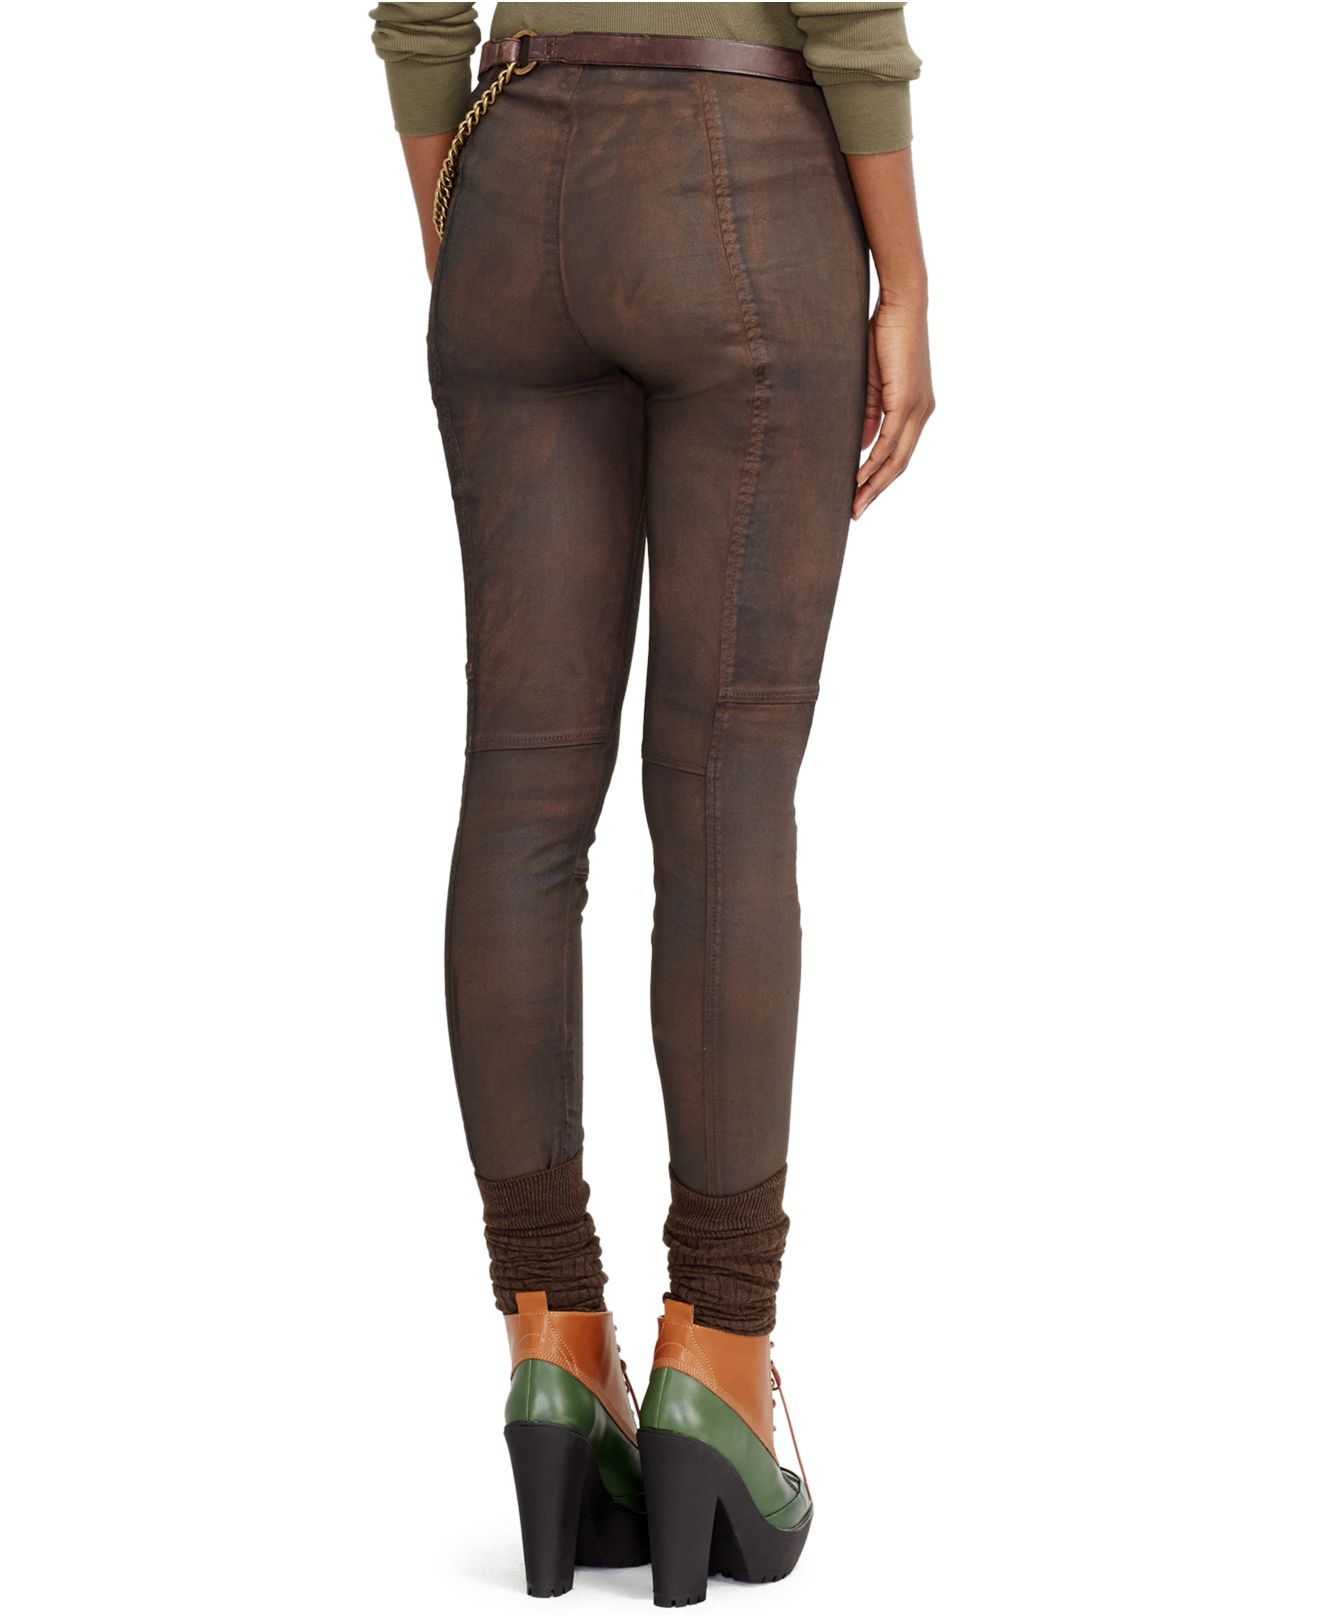 polo ralph lauren pull on denim leggings in brown lyst. Black Bedroom Furniture Sets. Home Design Ideas